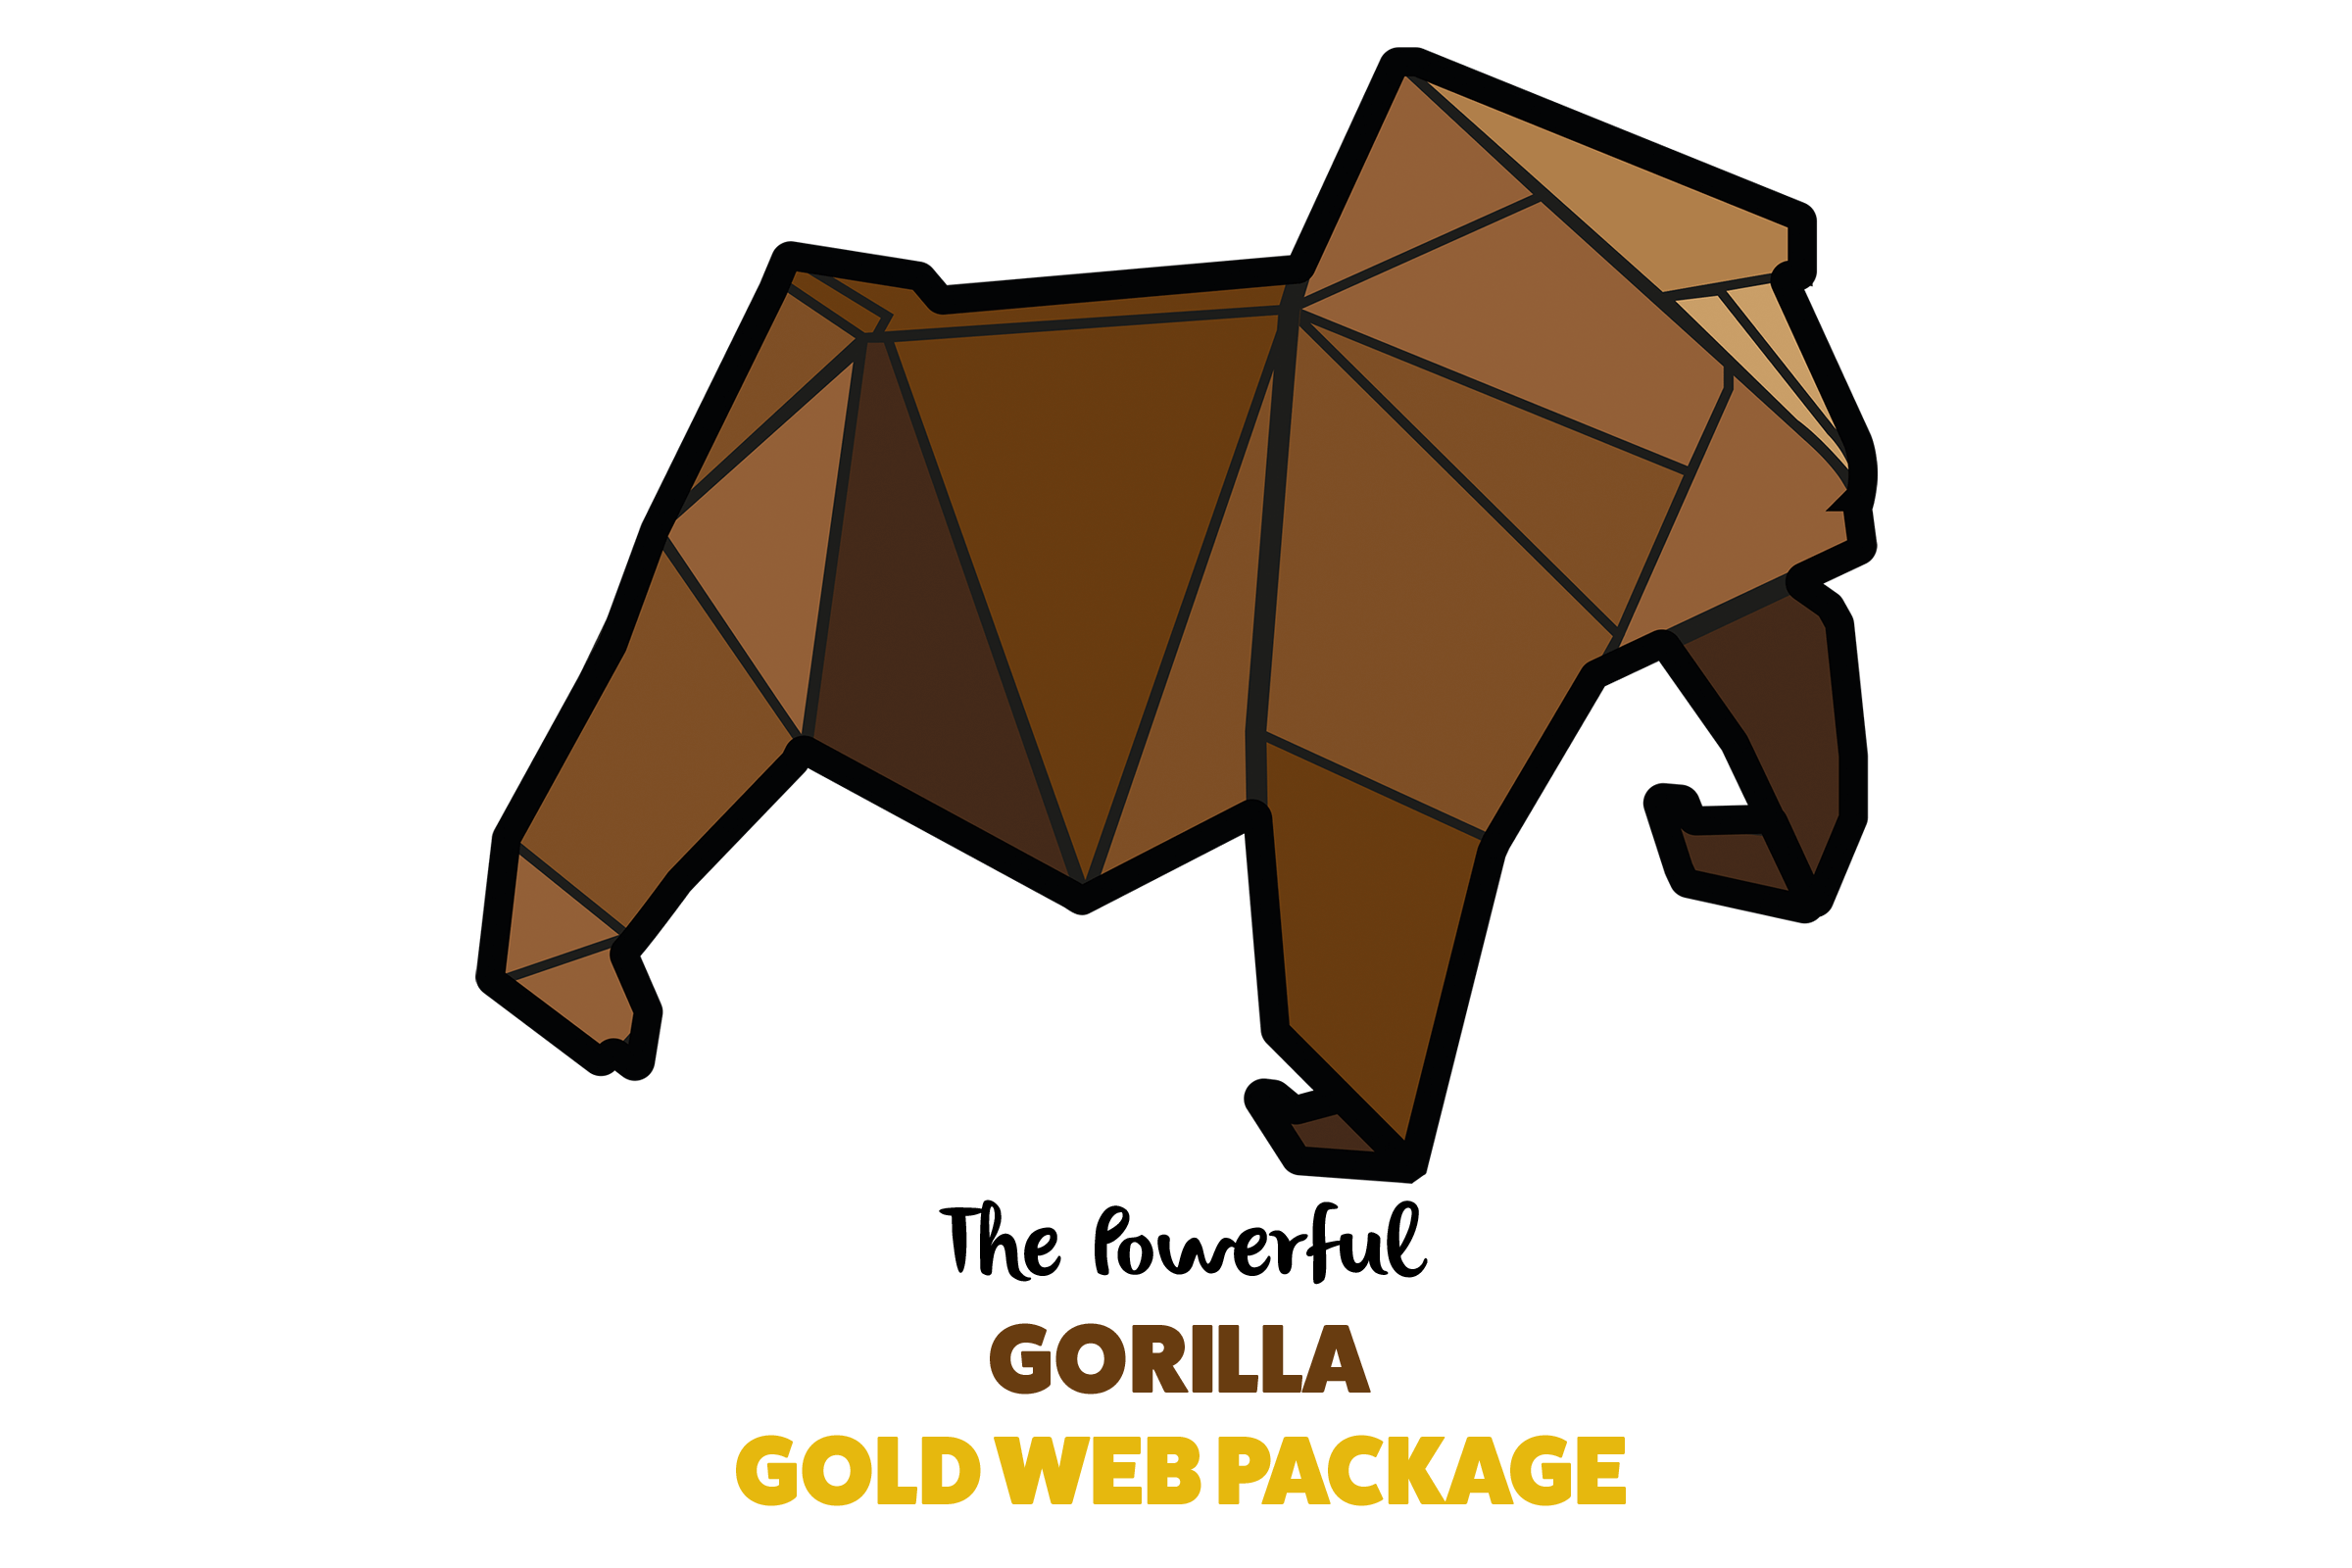 paper voice, oragami, web, graphic, logo, branding, design, ux, ui, newcastle upon tyne, gorilla